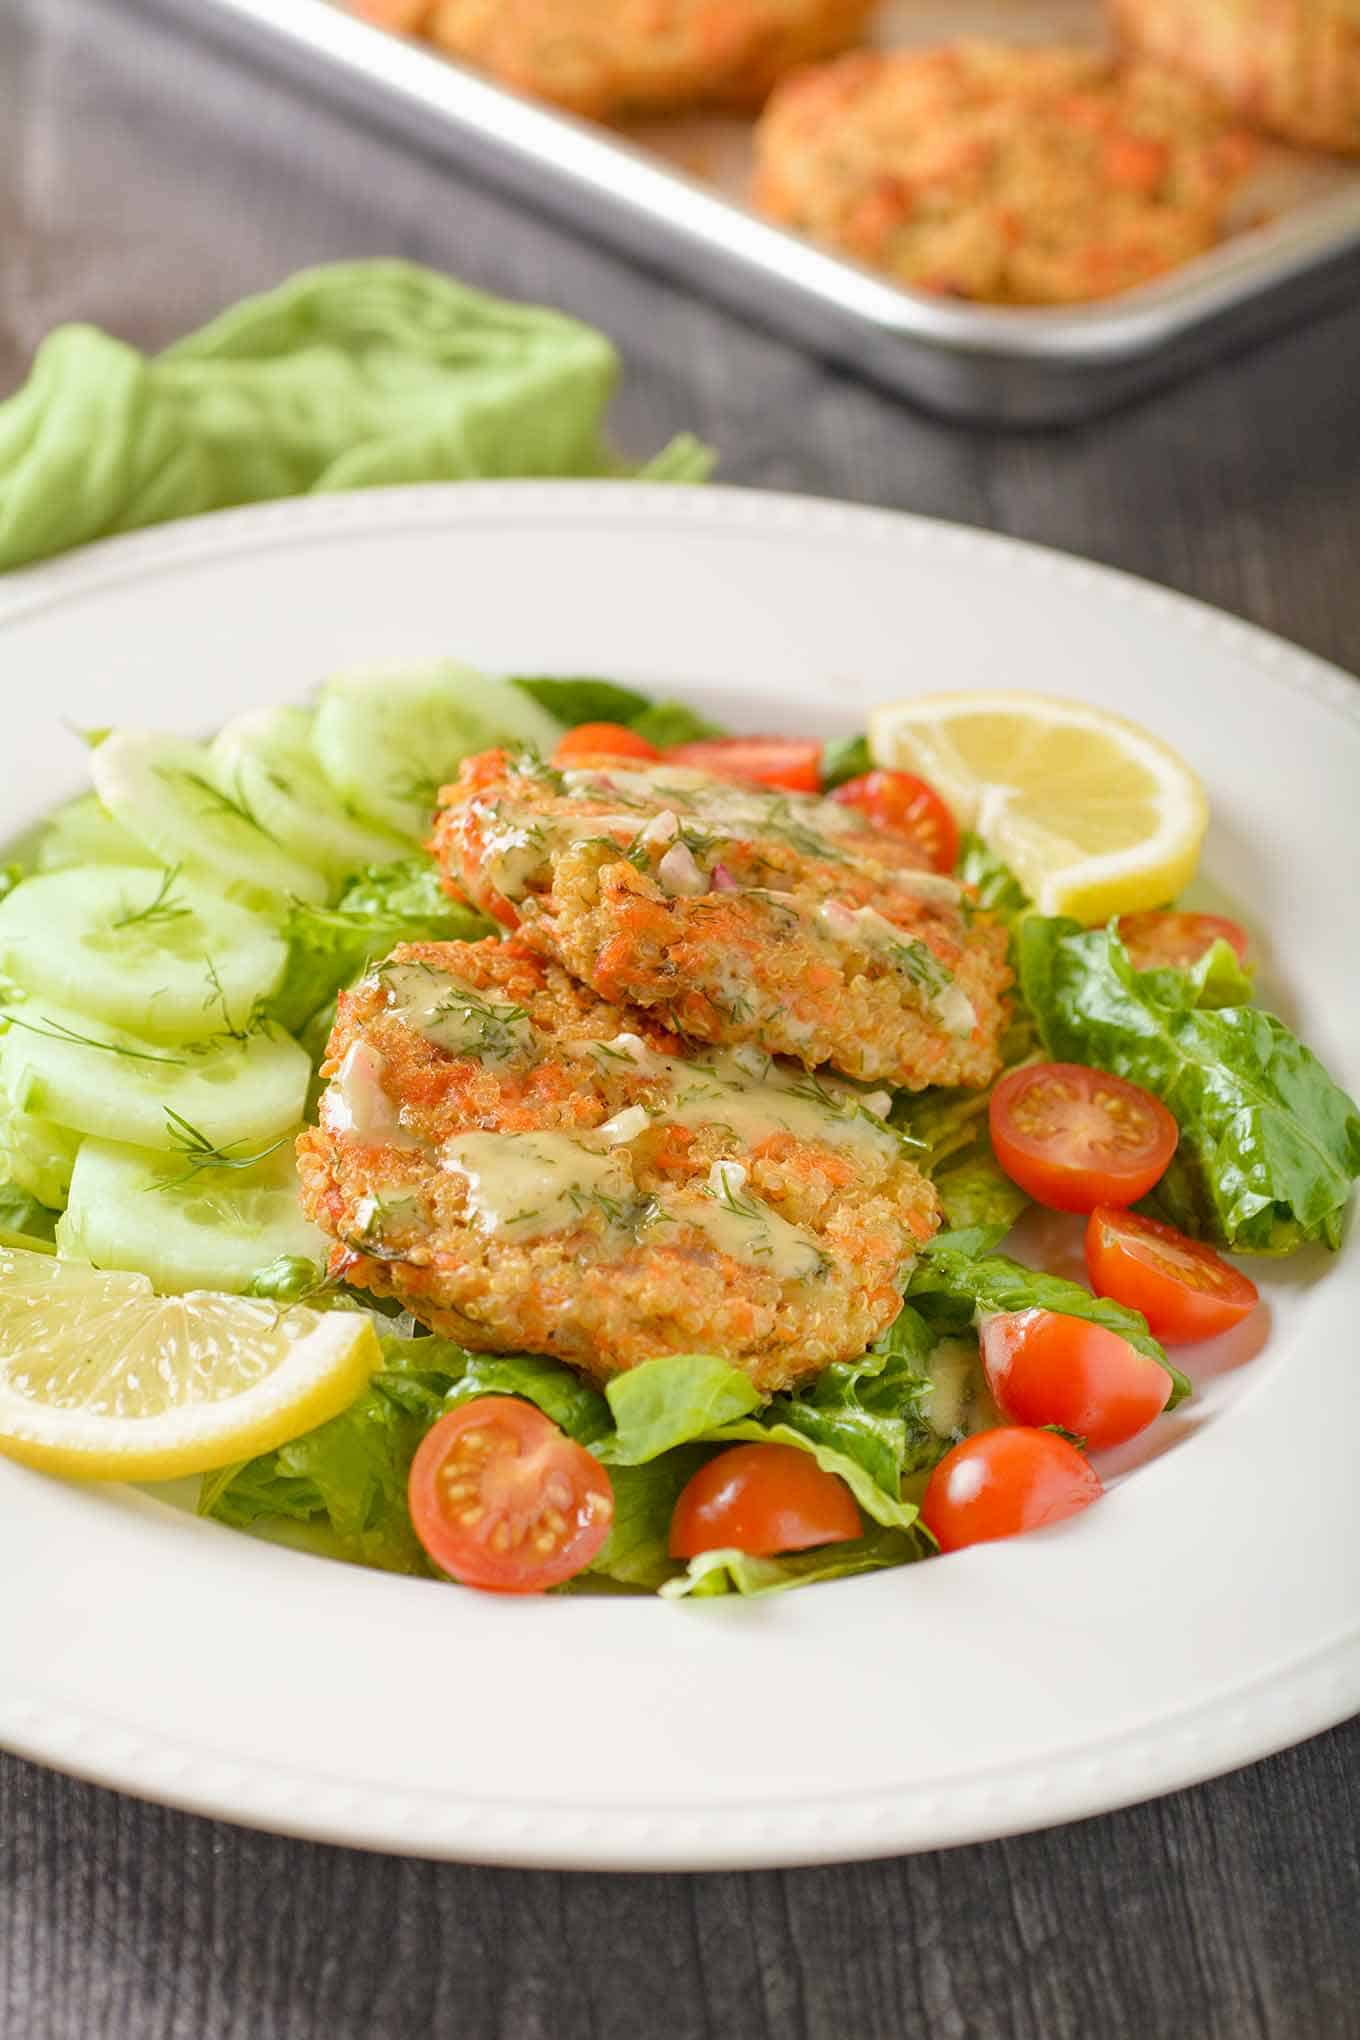 A serving of baked salmon quinoa cakes with salad, creamy lemon and dill dressing, and a sheet pan with more salmon patties in the background.